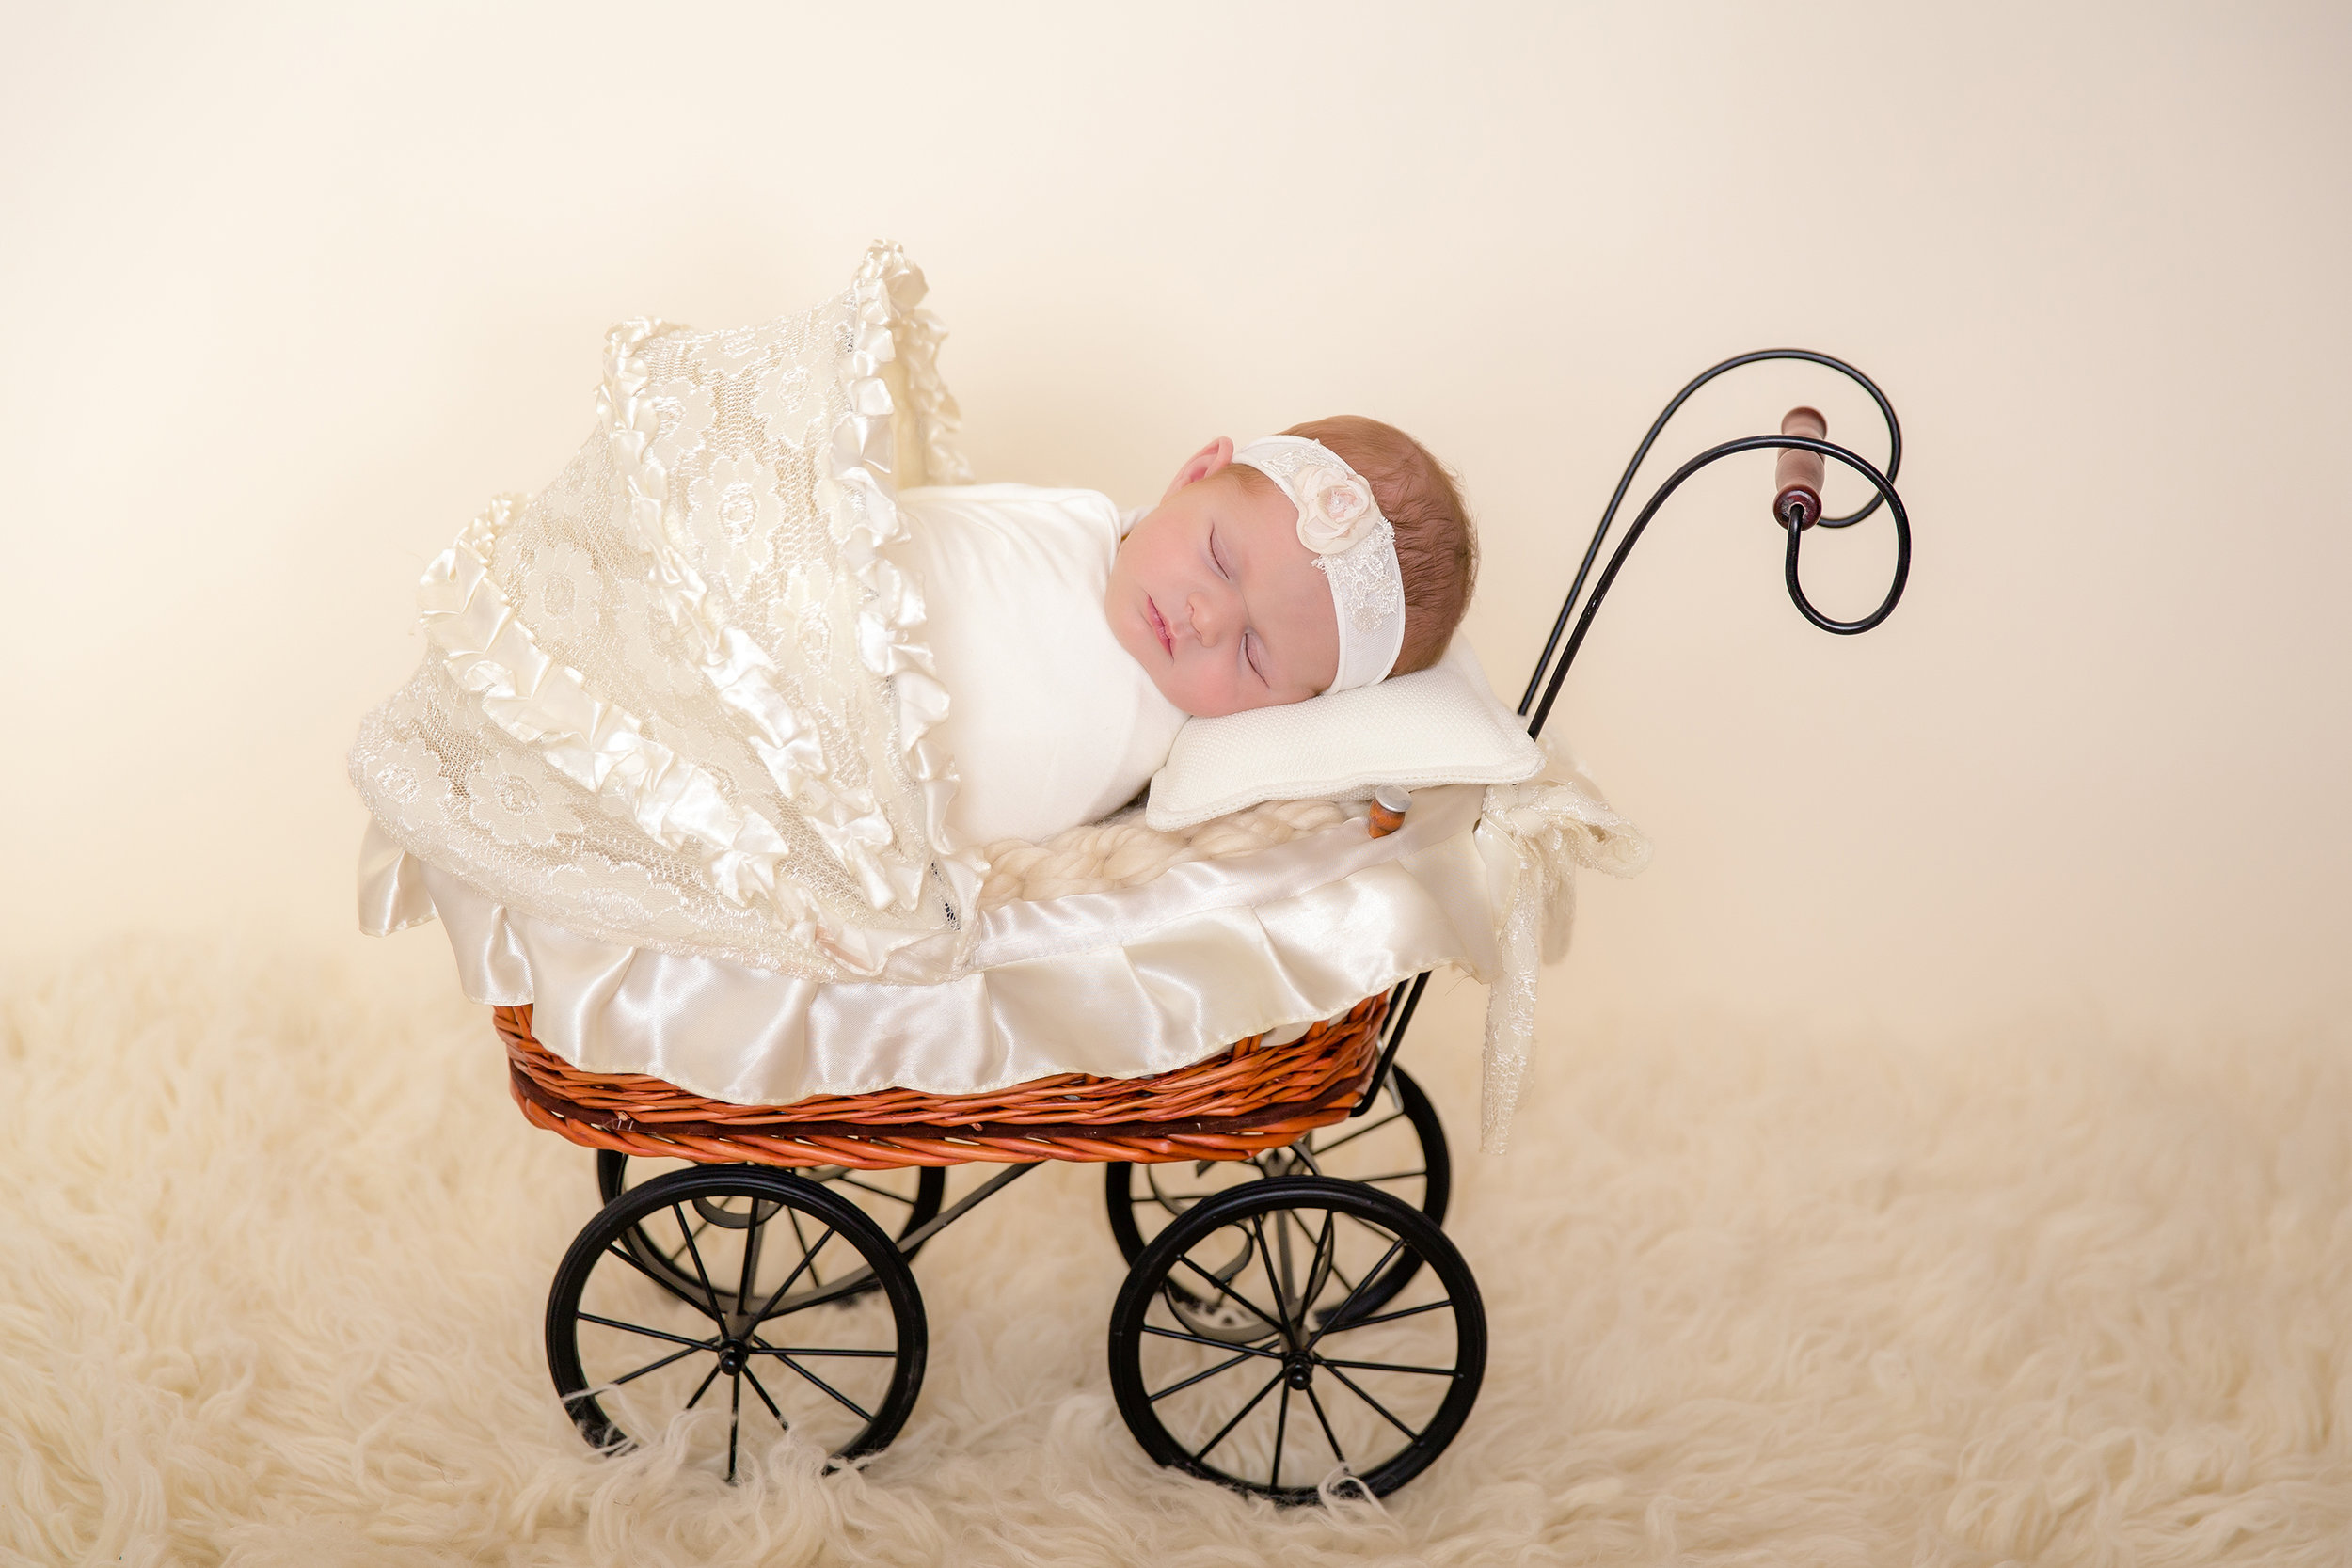 Newborn baby girl sleeping soundly in a cute little stroller, wrapped in a white wrap and wearing a white headband. Newborn Photoshoot ideas. Calgary Newborn Photographer - Milashka Photography.